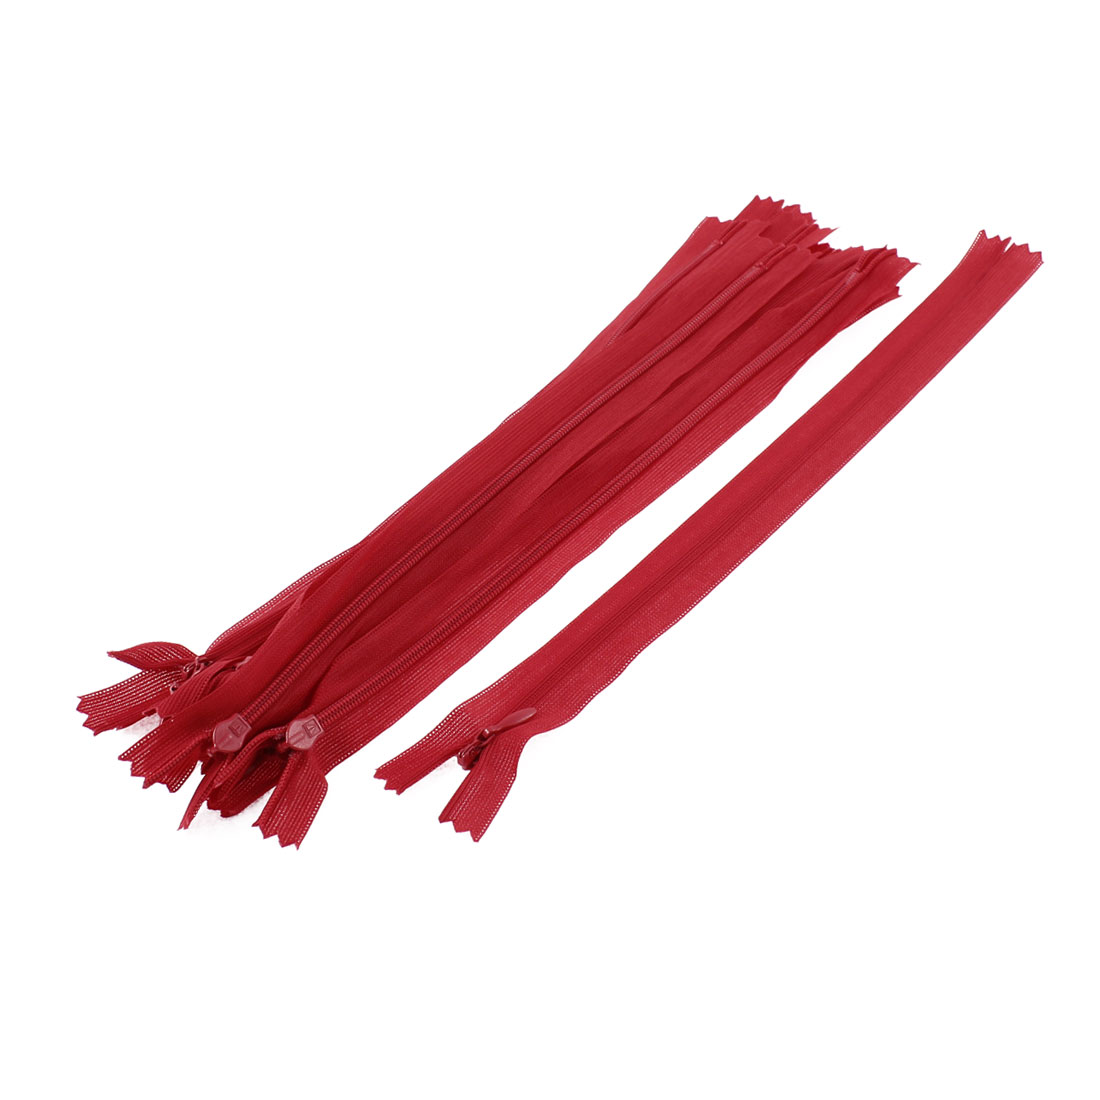 Dress Pants Closed End Nylon Zippers Tailor Sewing Craft Tool Red 25cm 10 Pcs